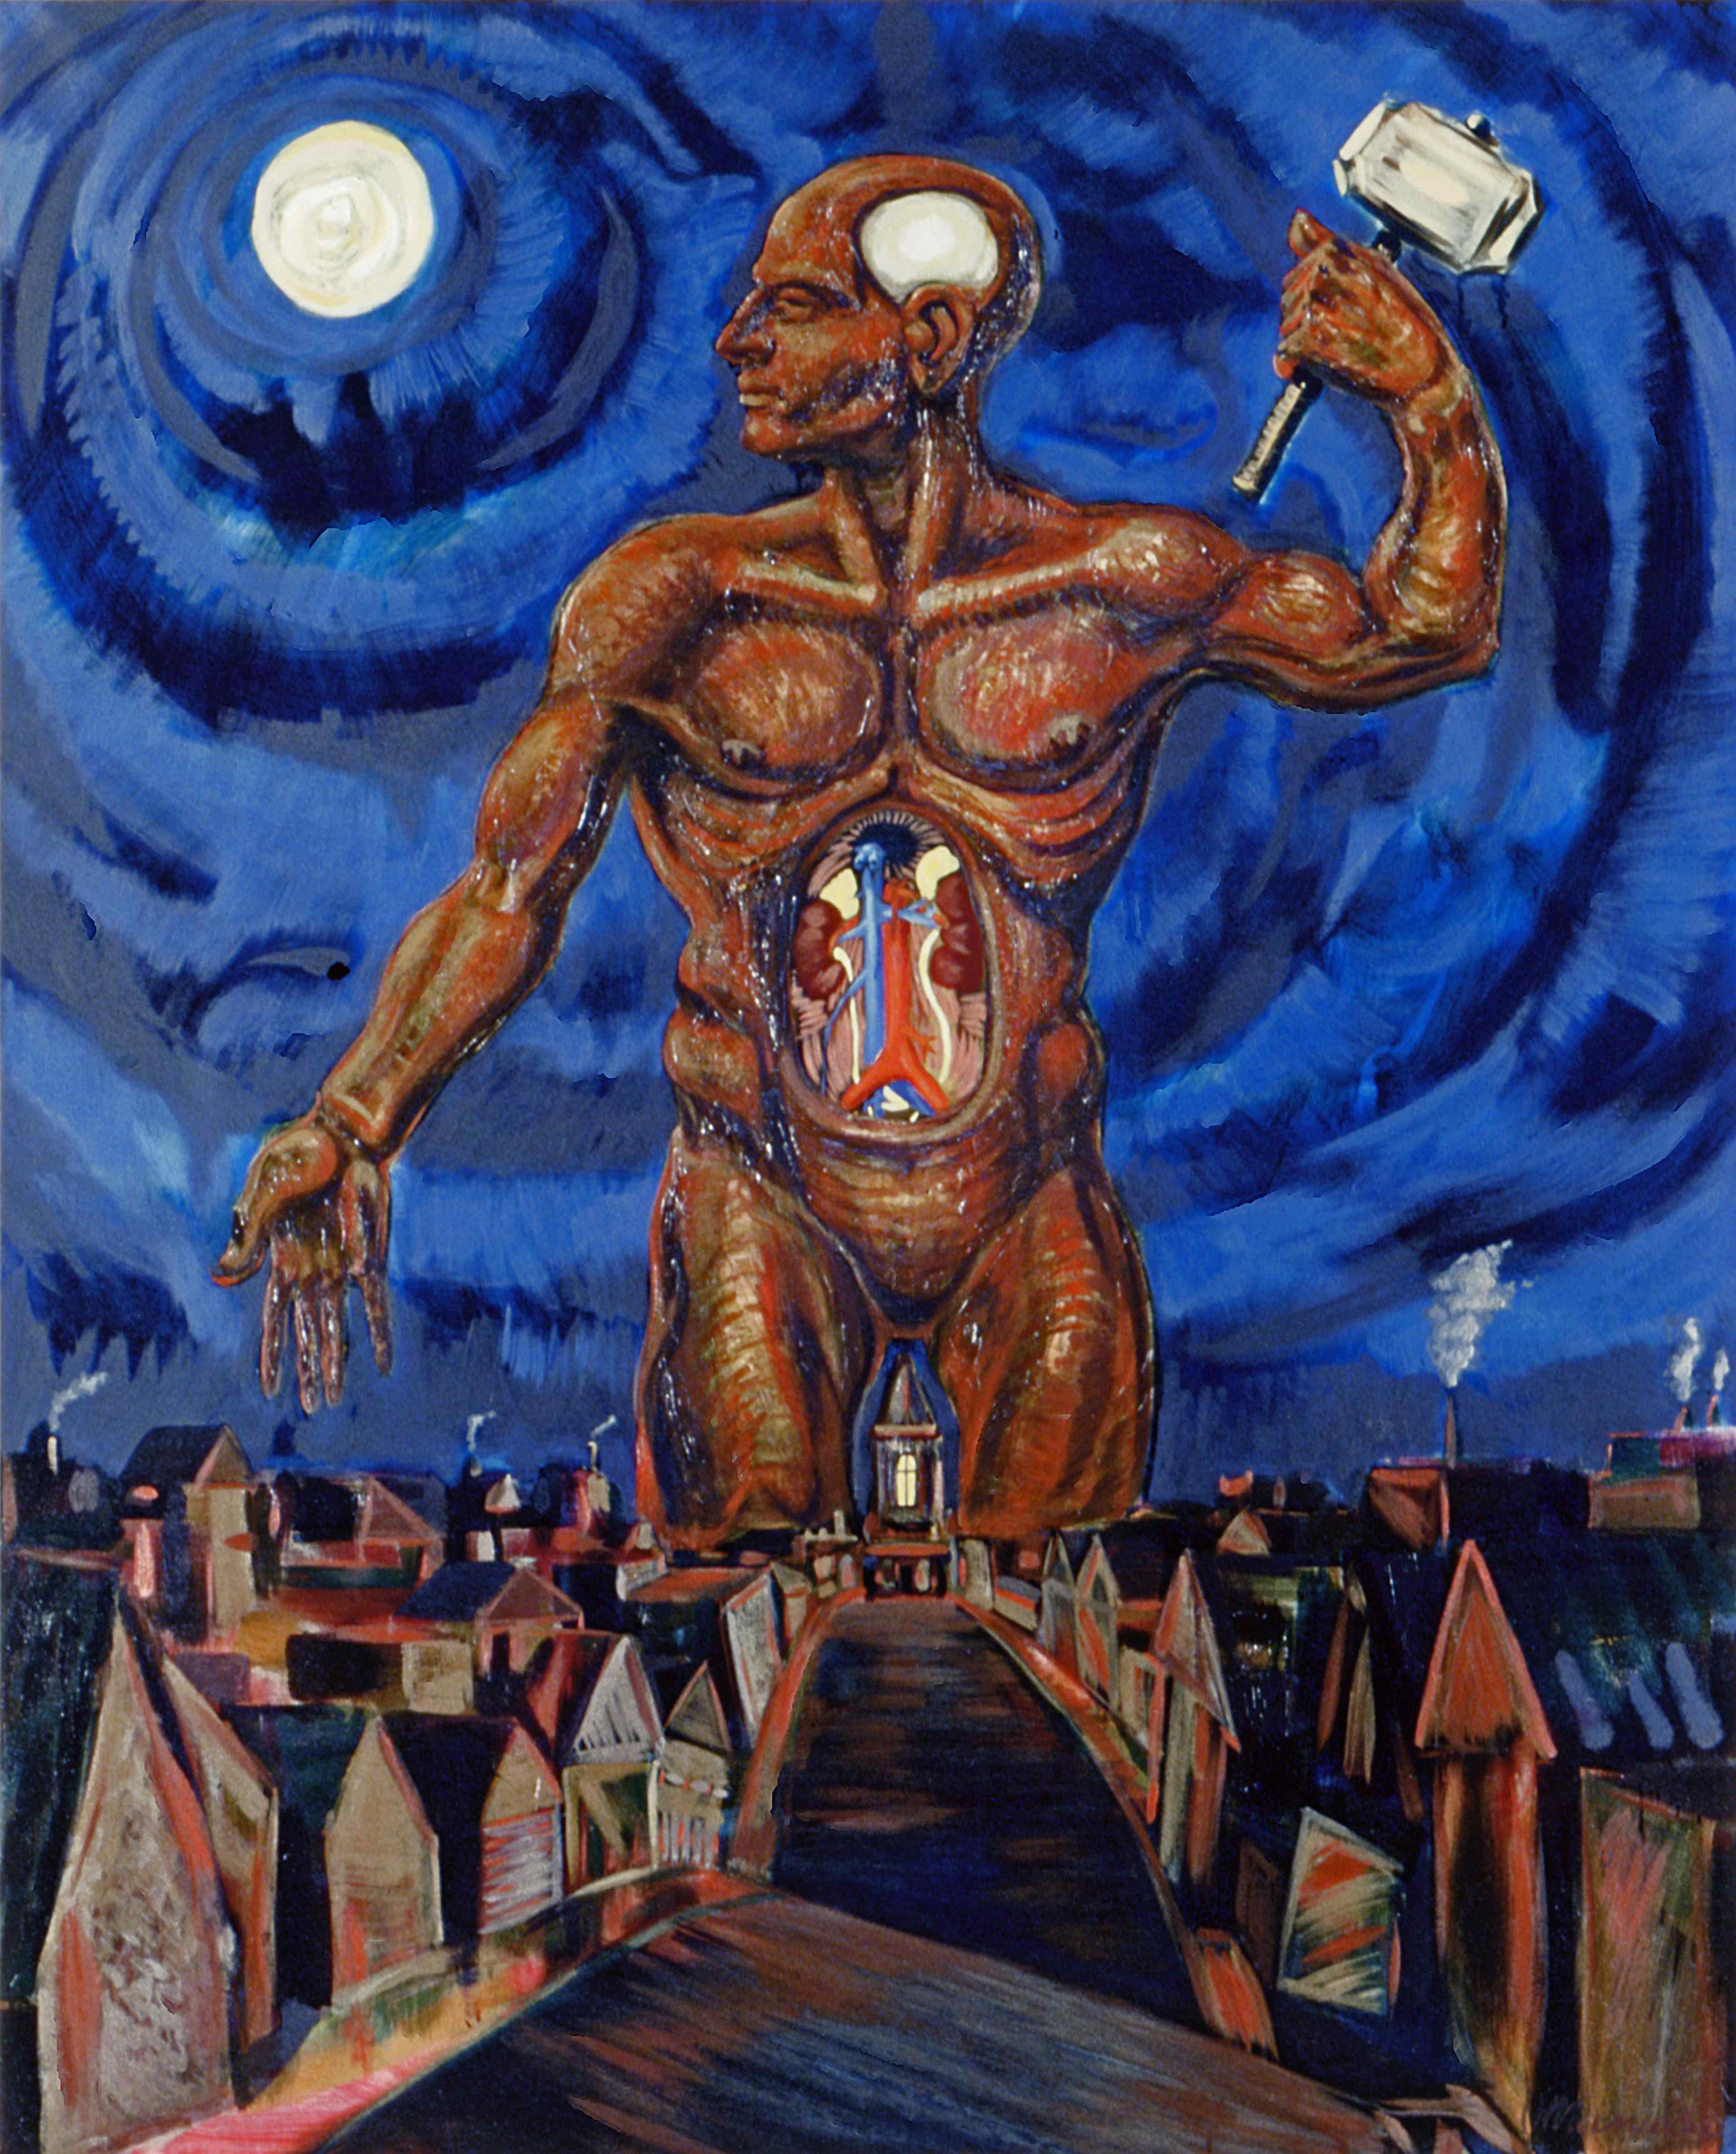 CADAVER MAN, painted by Vince Mancuso in 1990, oil on canvas, 6x4.5 feet. Available